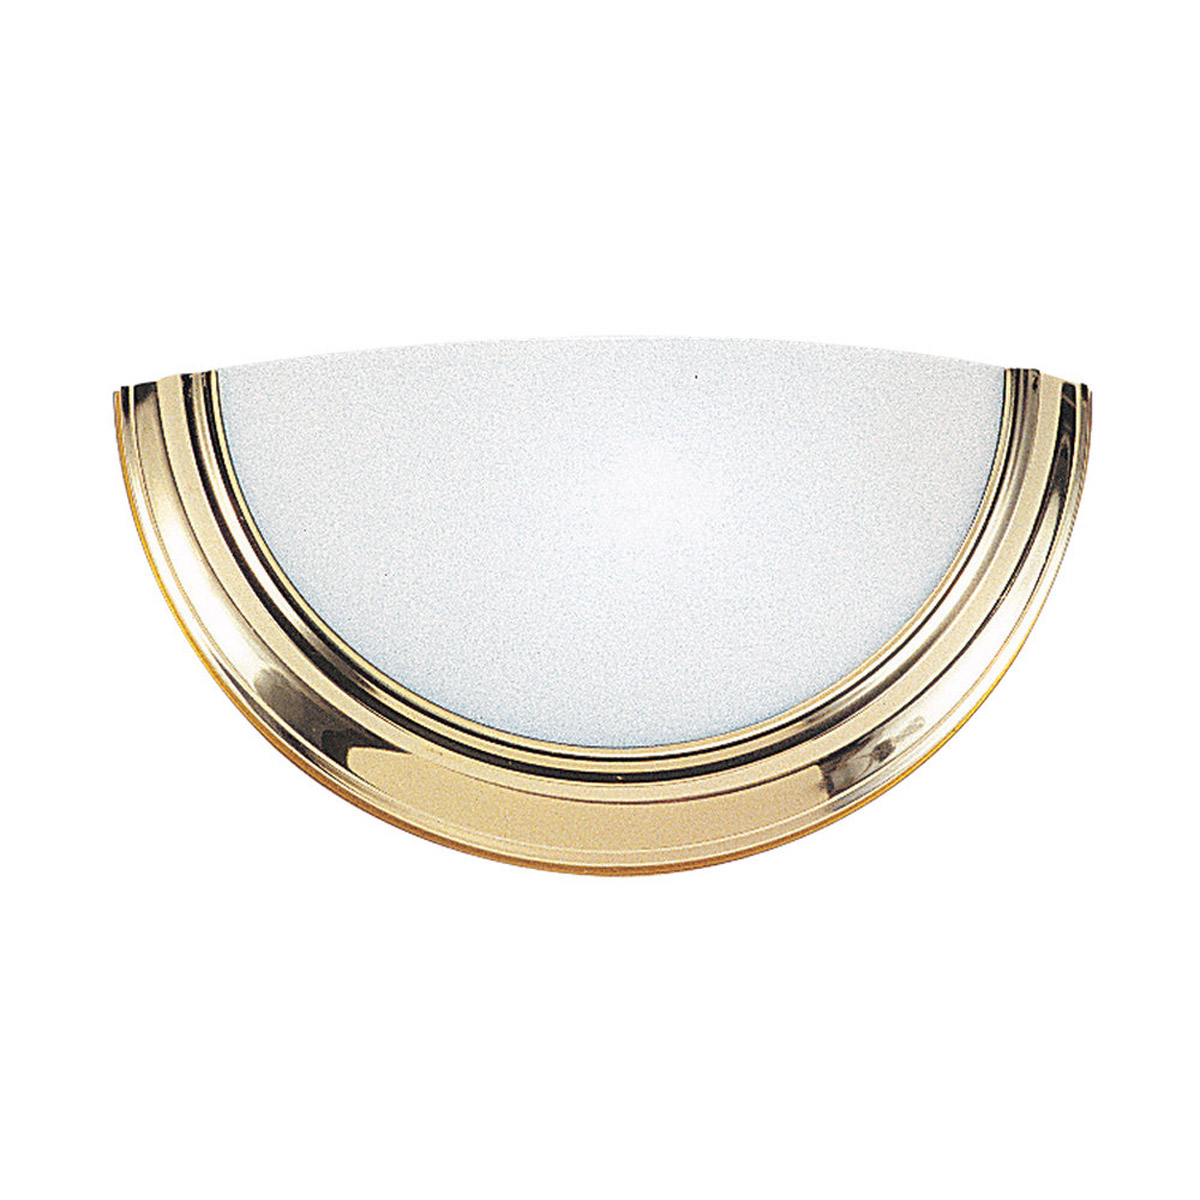 Sea Gull Lighting Signature 1 Light Bath Vanity in Polished Brass 4135-02